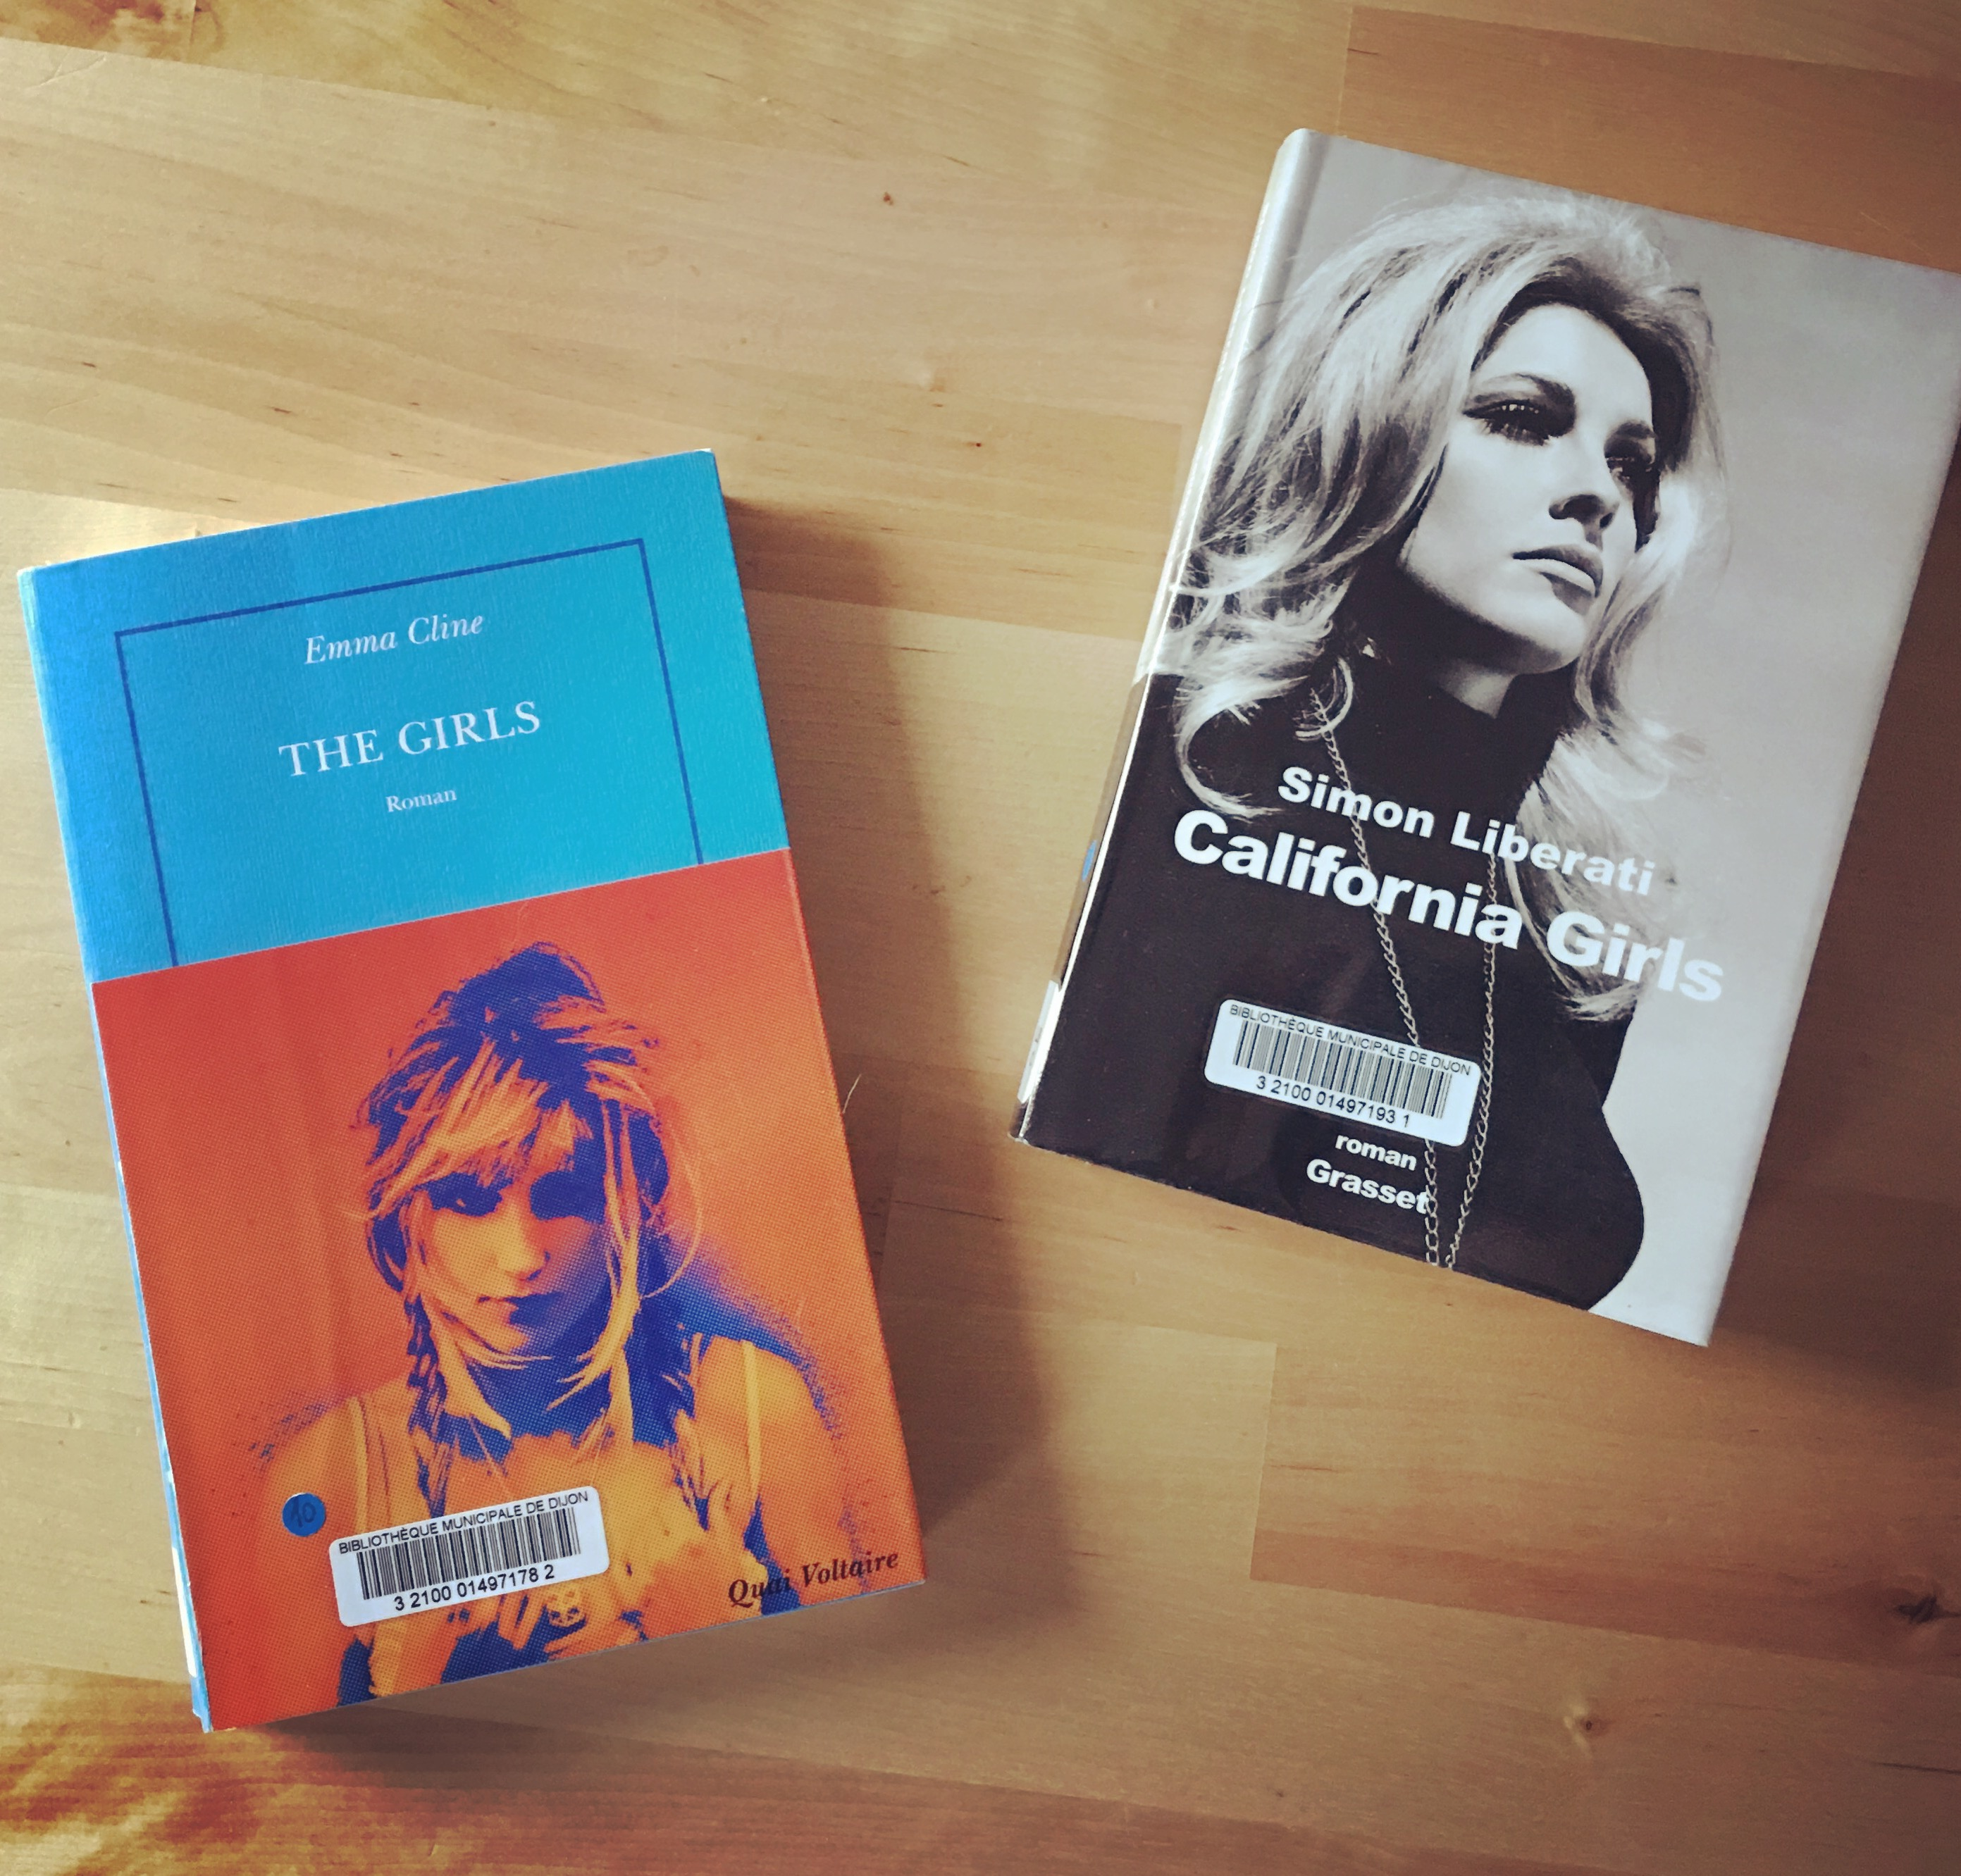 The Girls et California Girls : California dreamin' ou mauvais trip ?